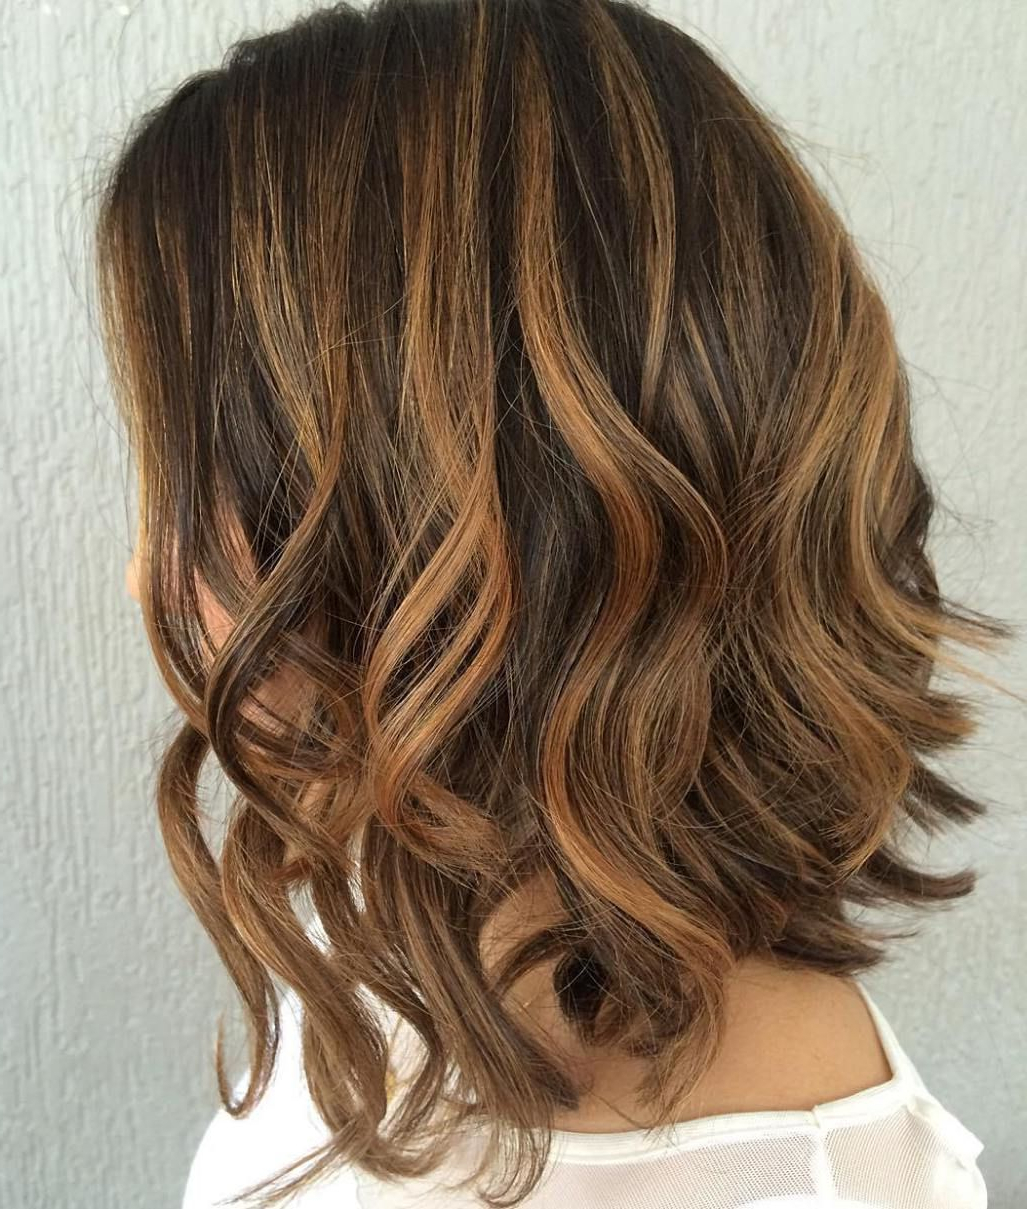 60 Looks With Caramel Highlights On Brown And Dark Brown Hair In Intended For Well Known Caramel Lob Hairstyles With Delicate Layers (View 5 of 20)